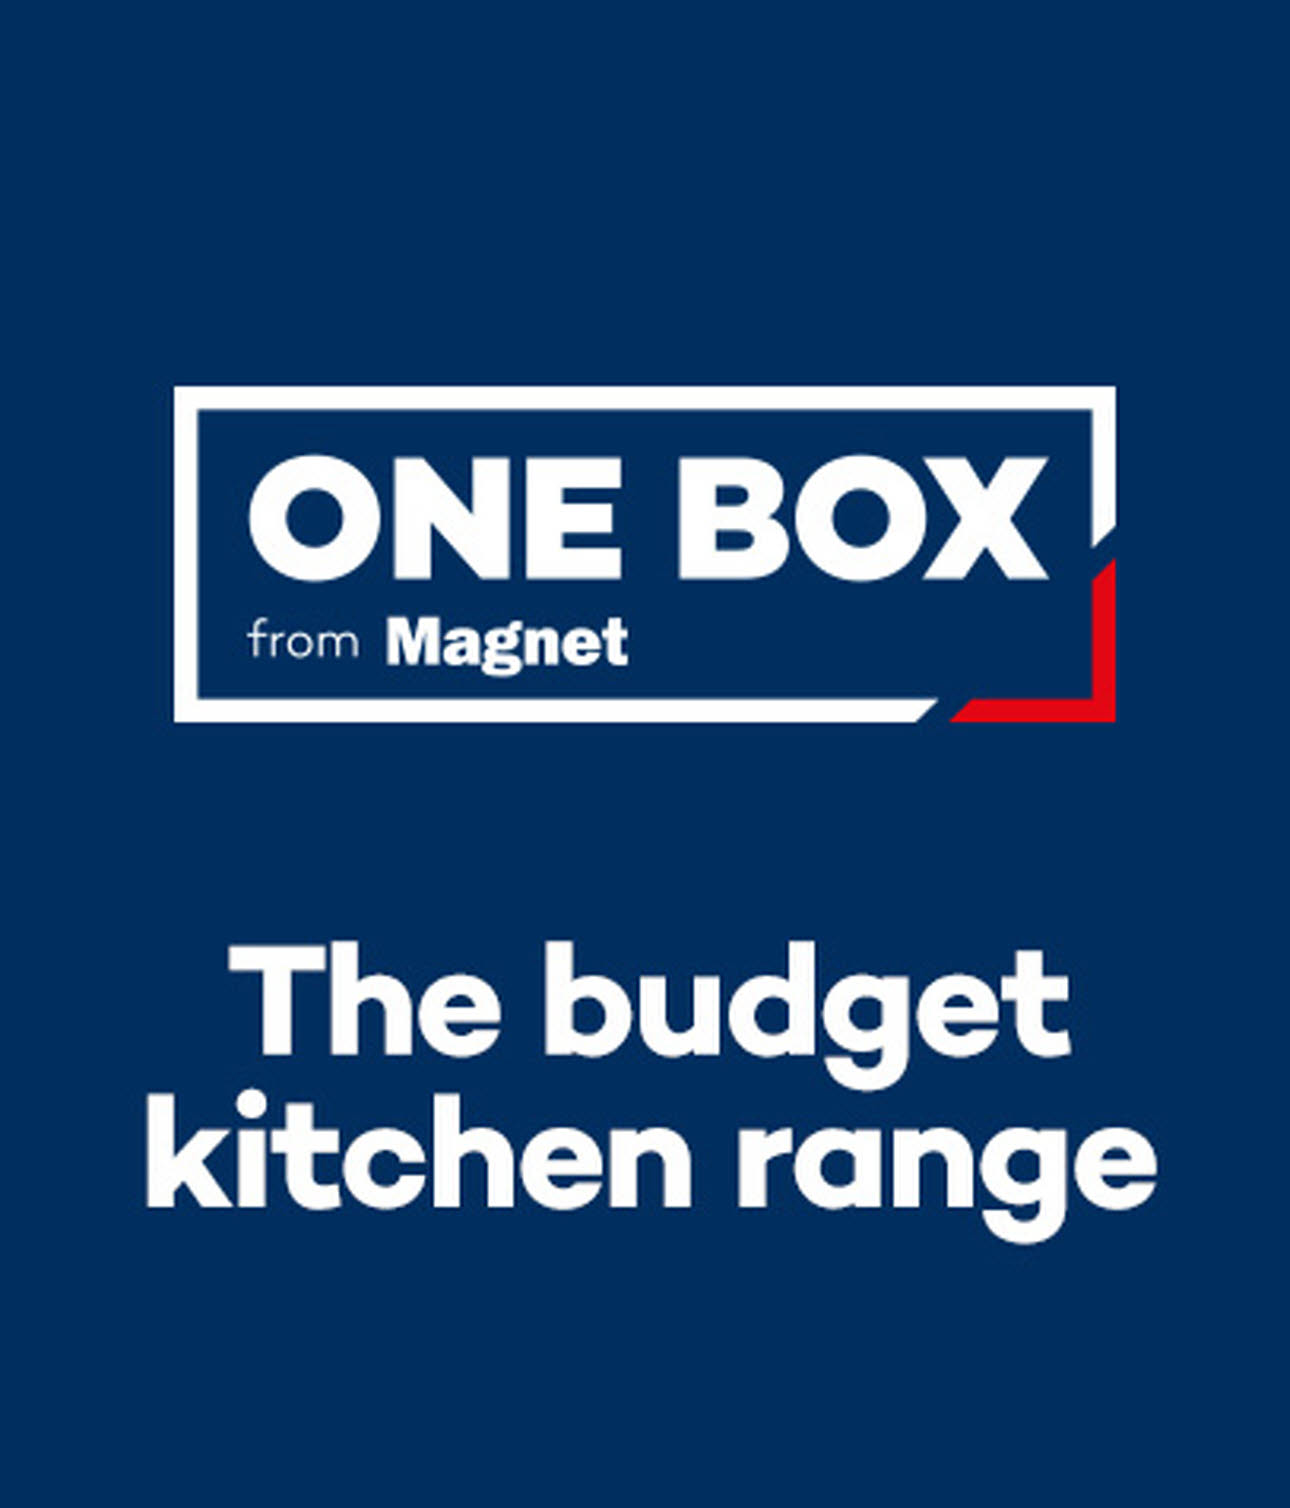 One Box the budget kitchen range